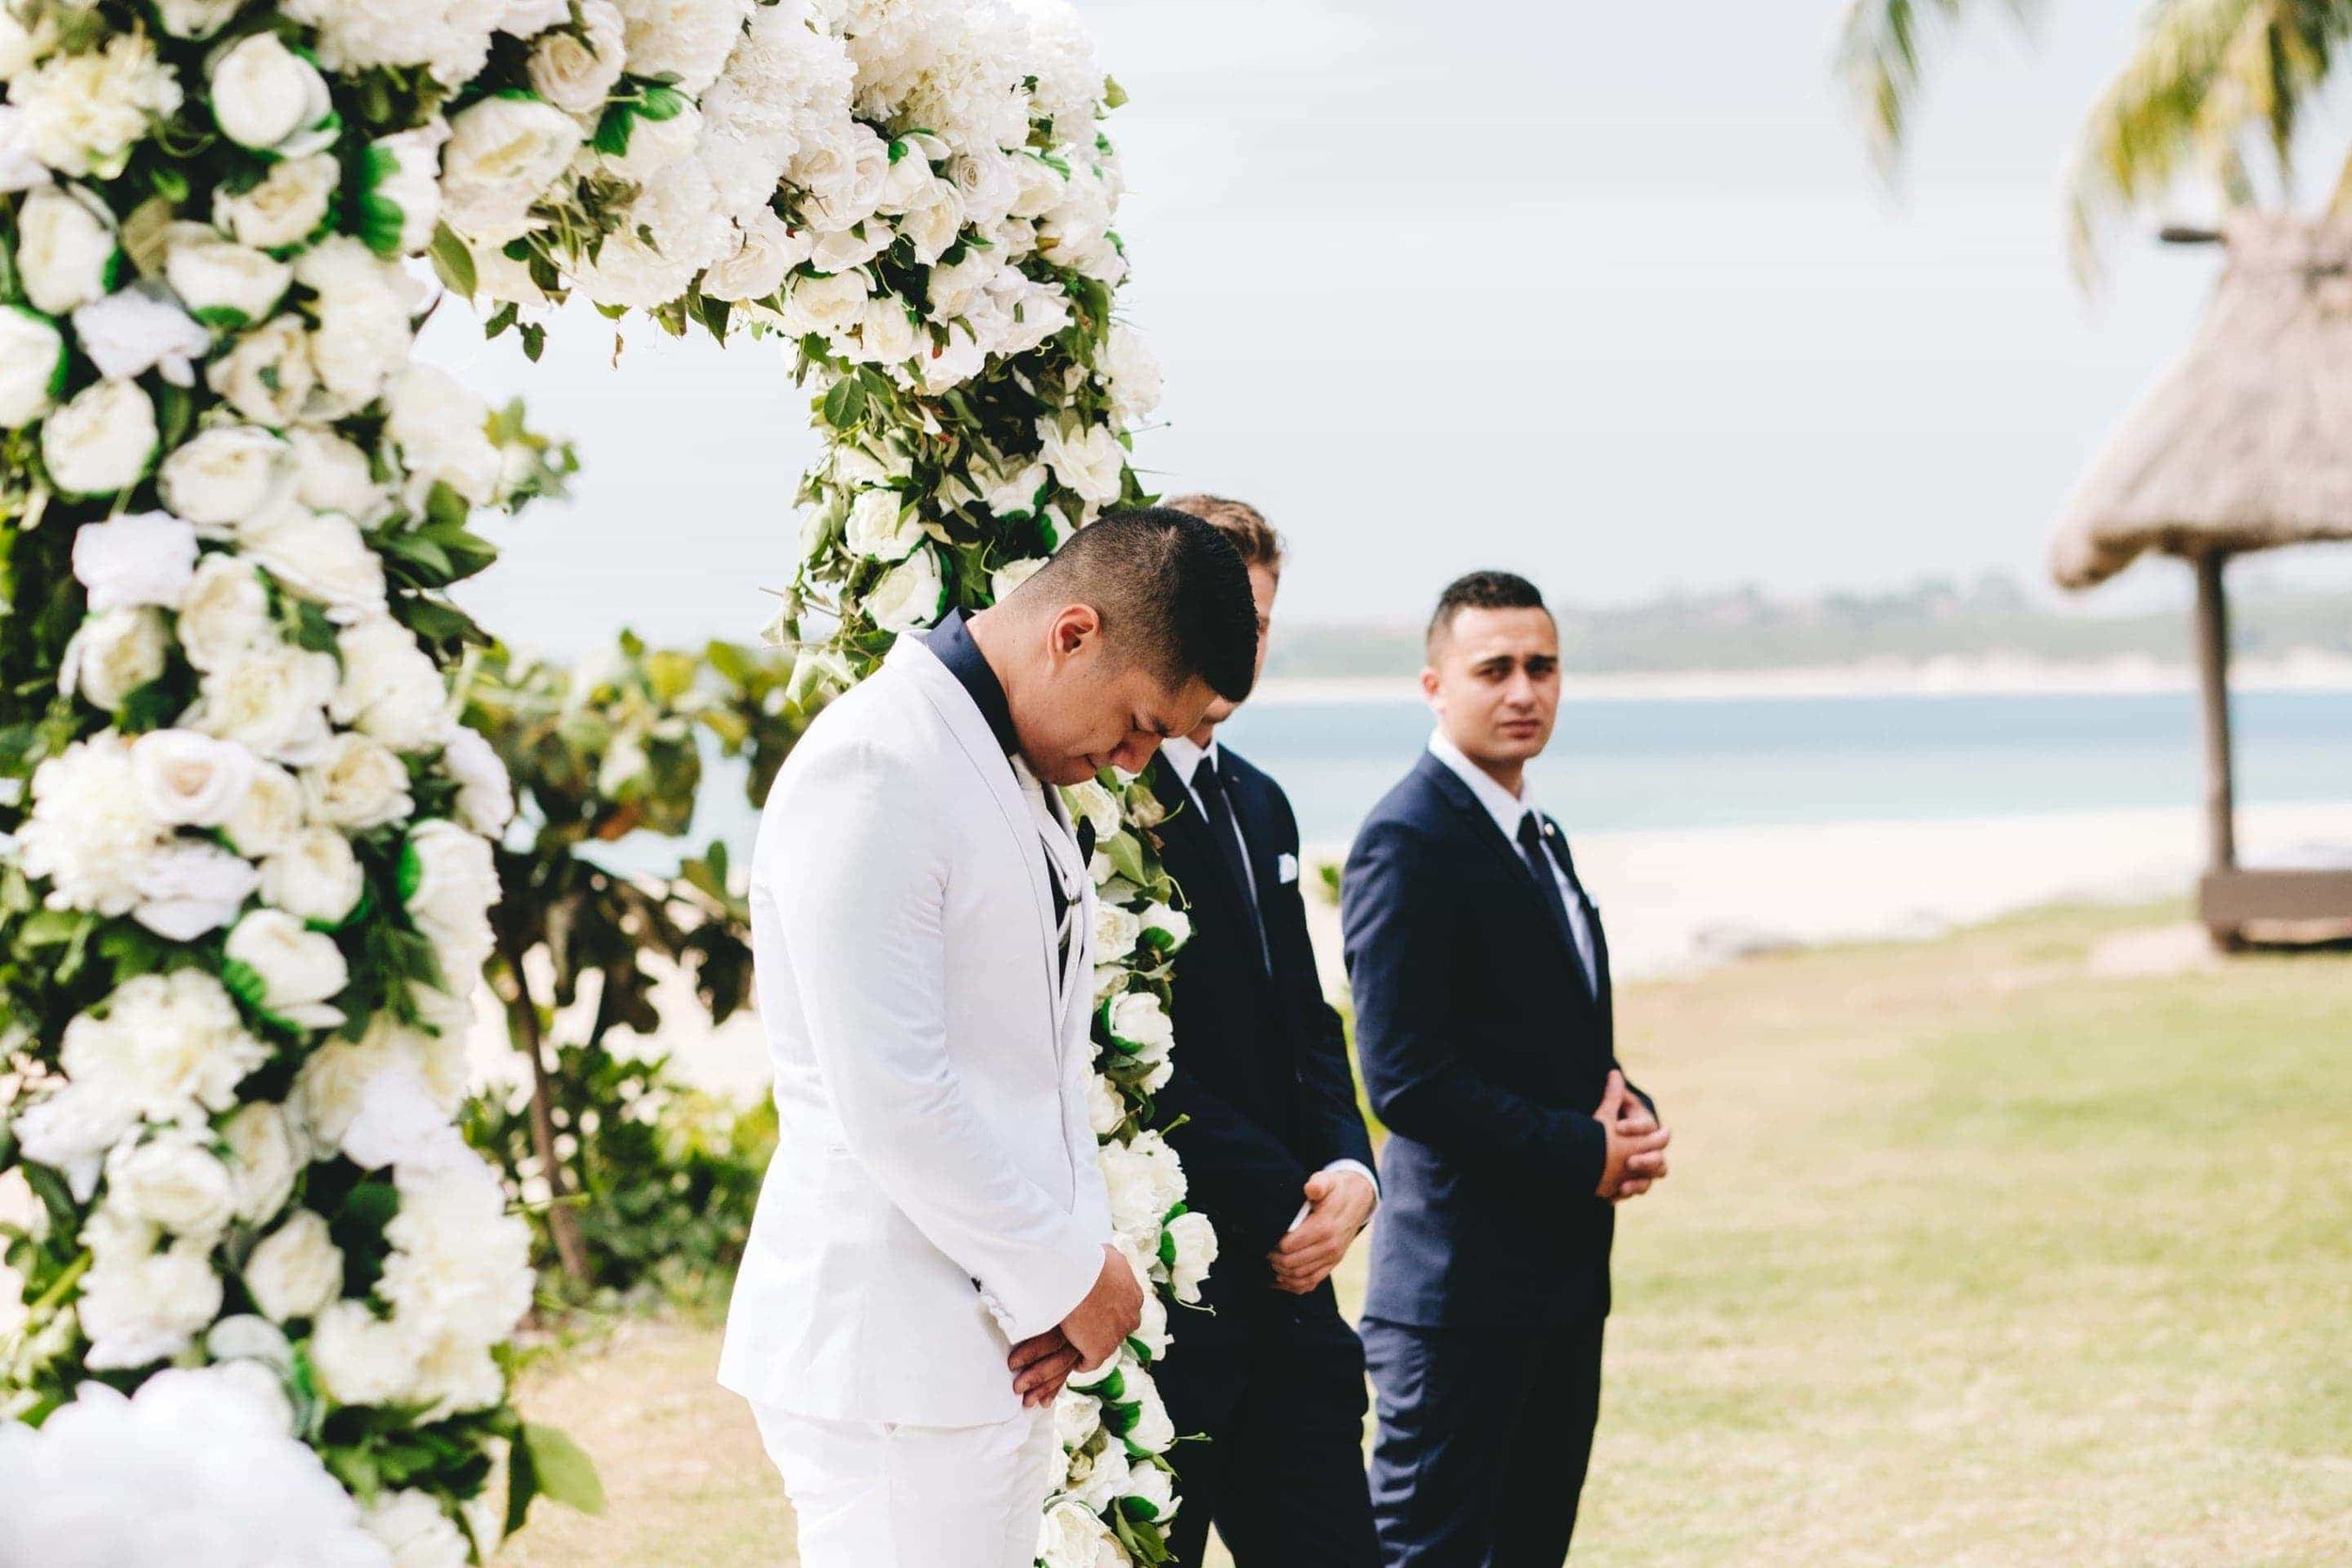 the groom overcome with emotion after seeing his bride fr the first time